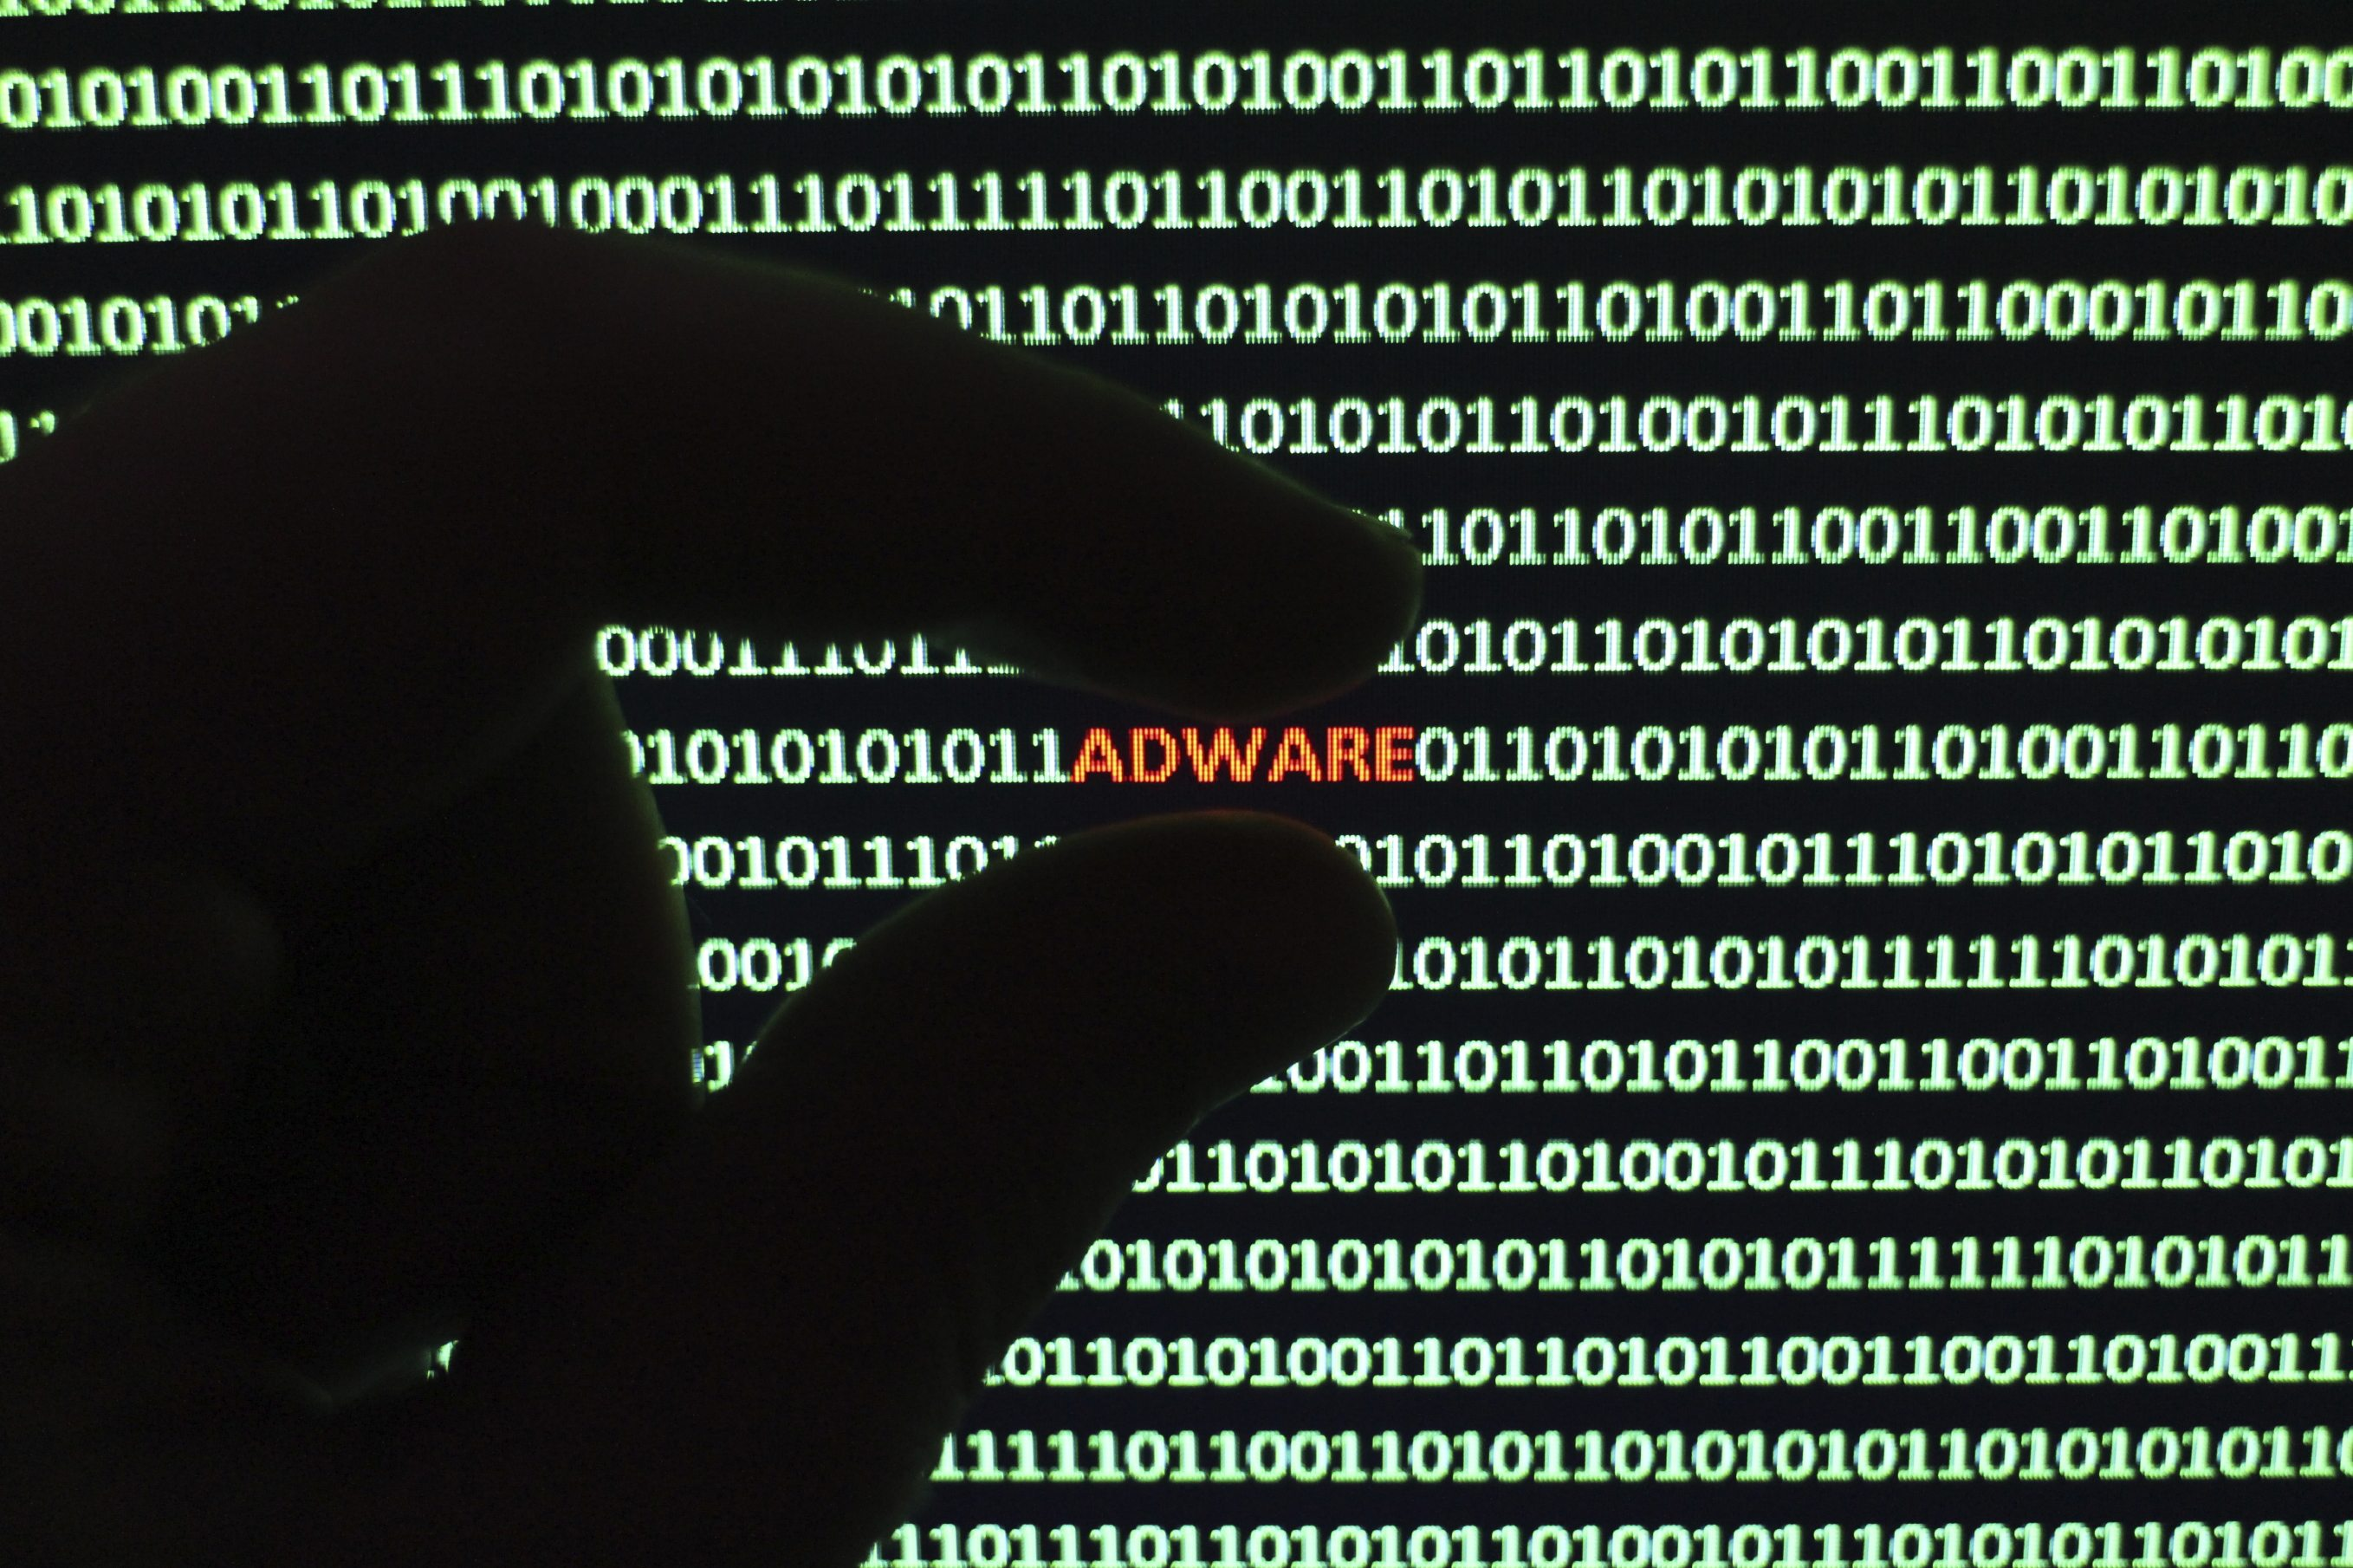 Adware - Cybersecurity blog